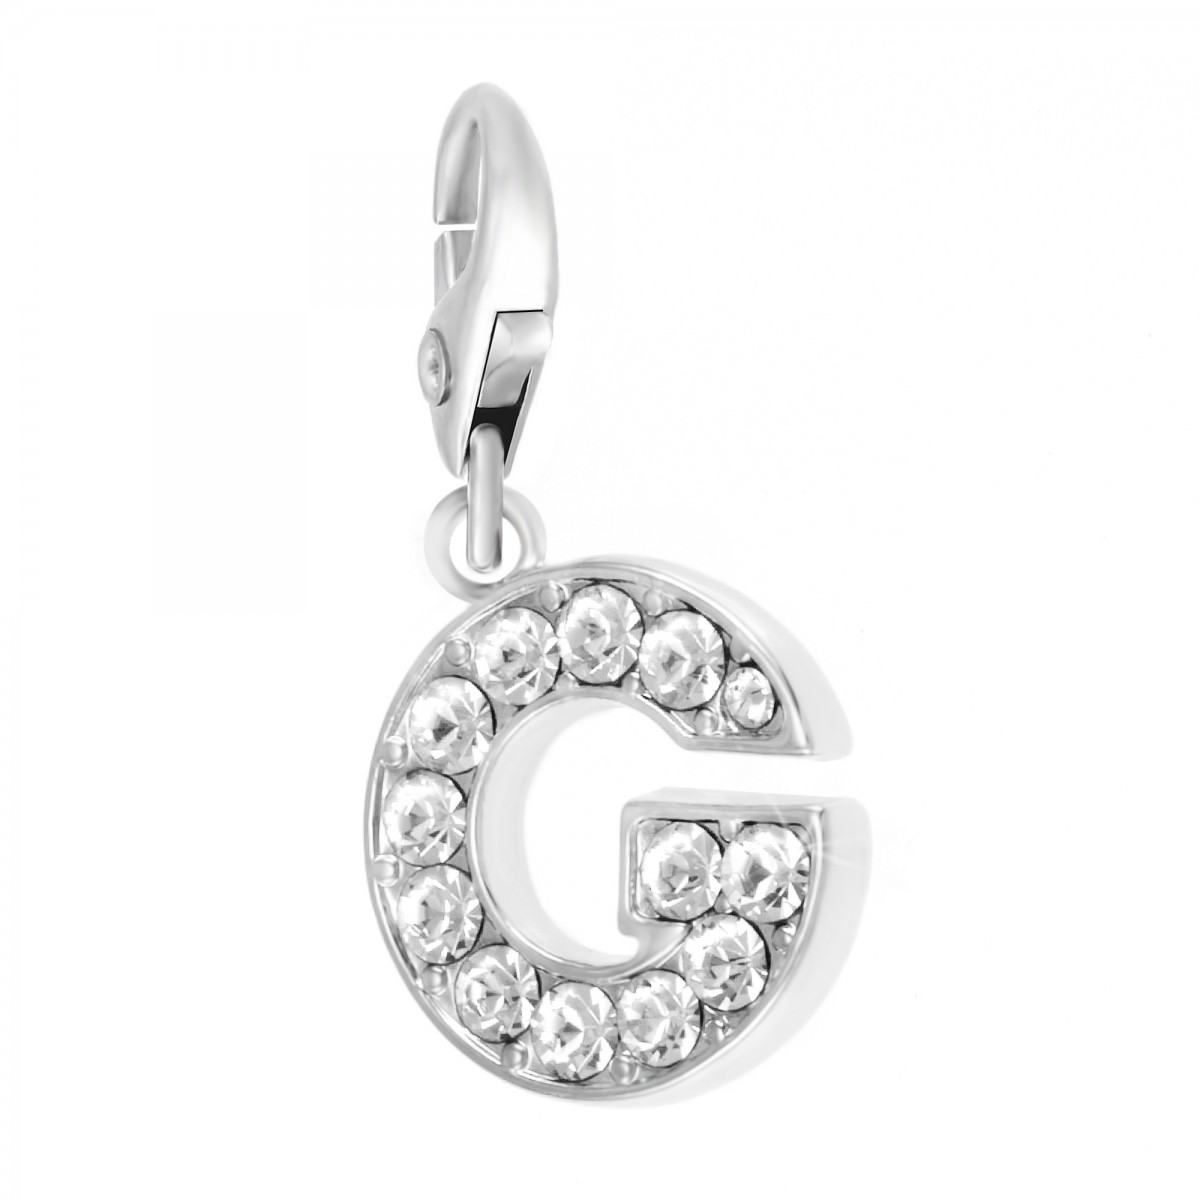 Charm Lettre G So Charm made with Crystal from Swarovski